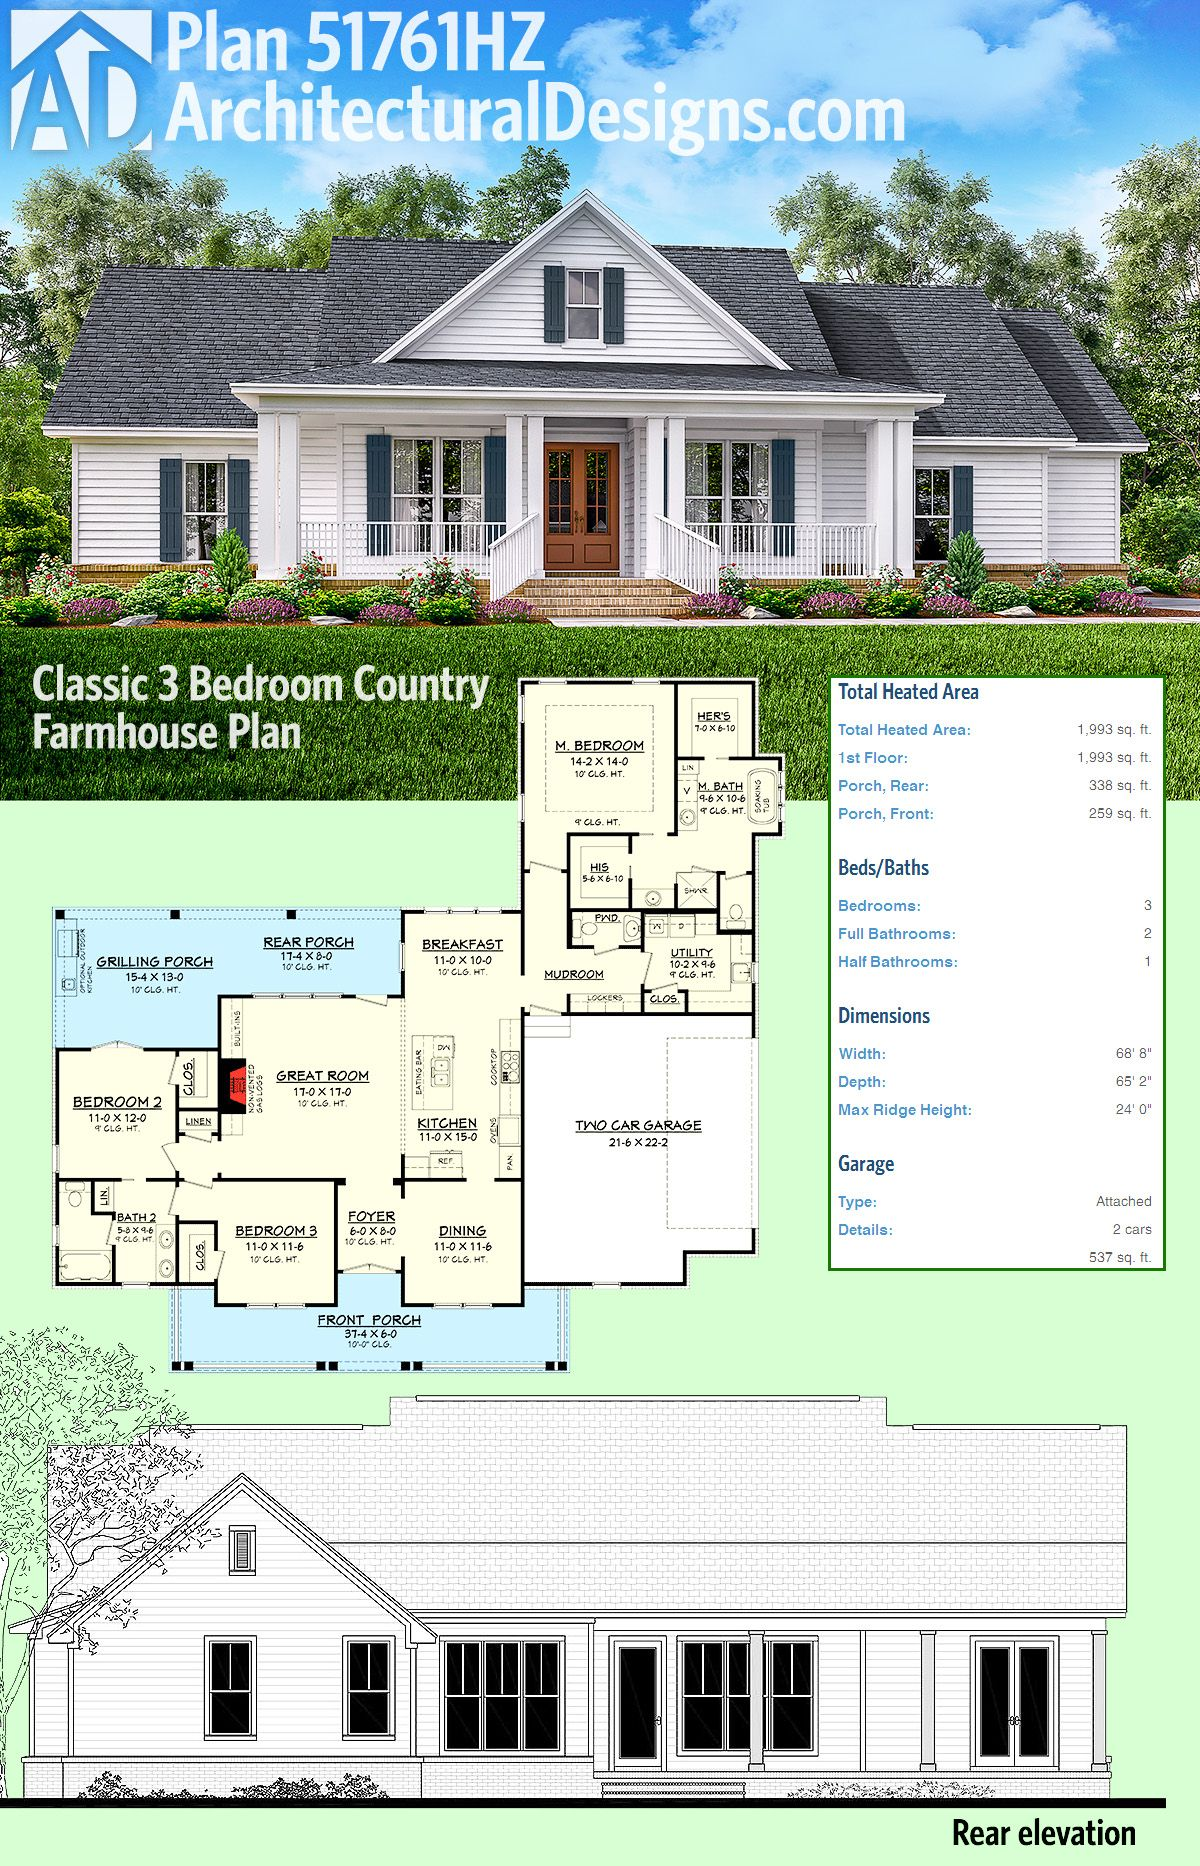 Plan 51761hz Classic 3 Bed Country Farmhouse Plan Architectural